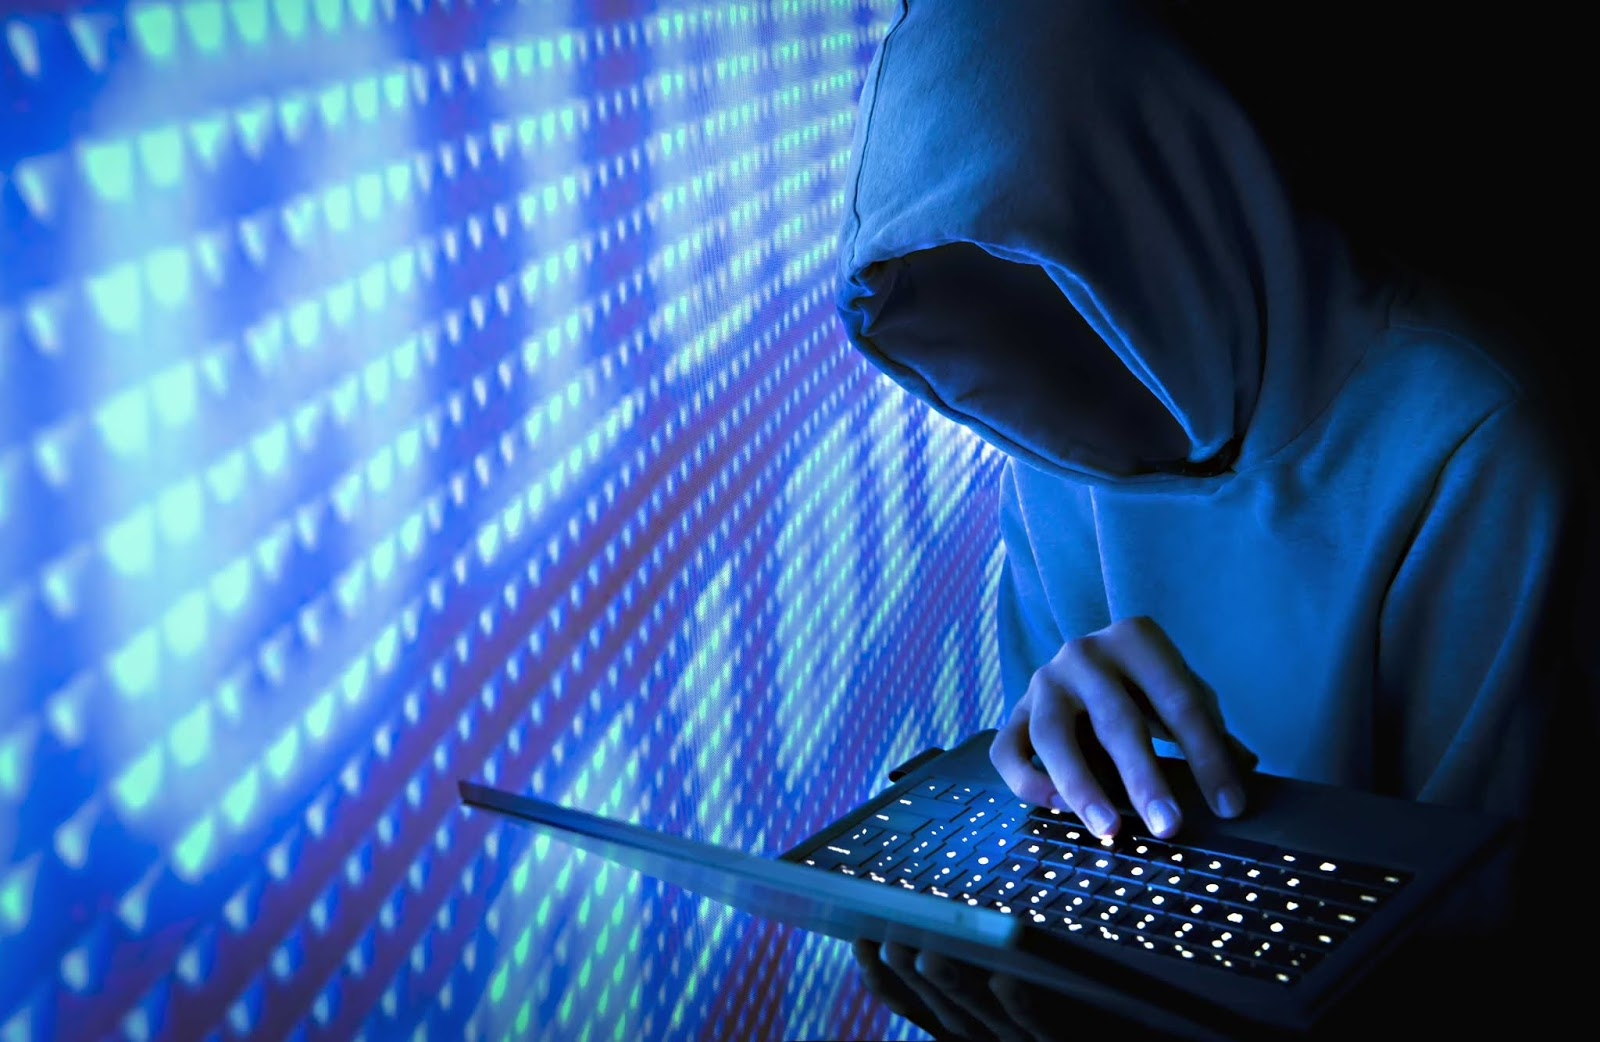 Basic Terms To Remember As Ethical Hacker (part 2)